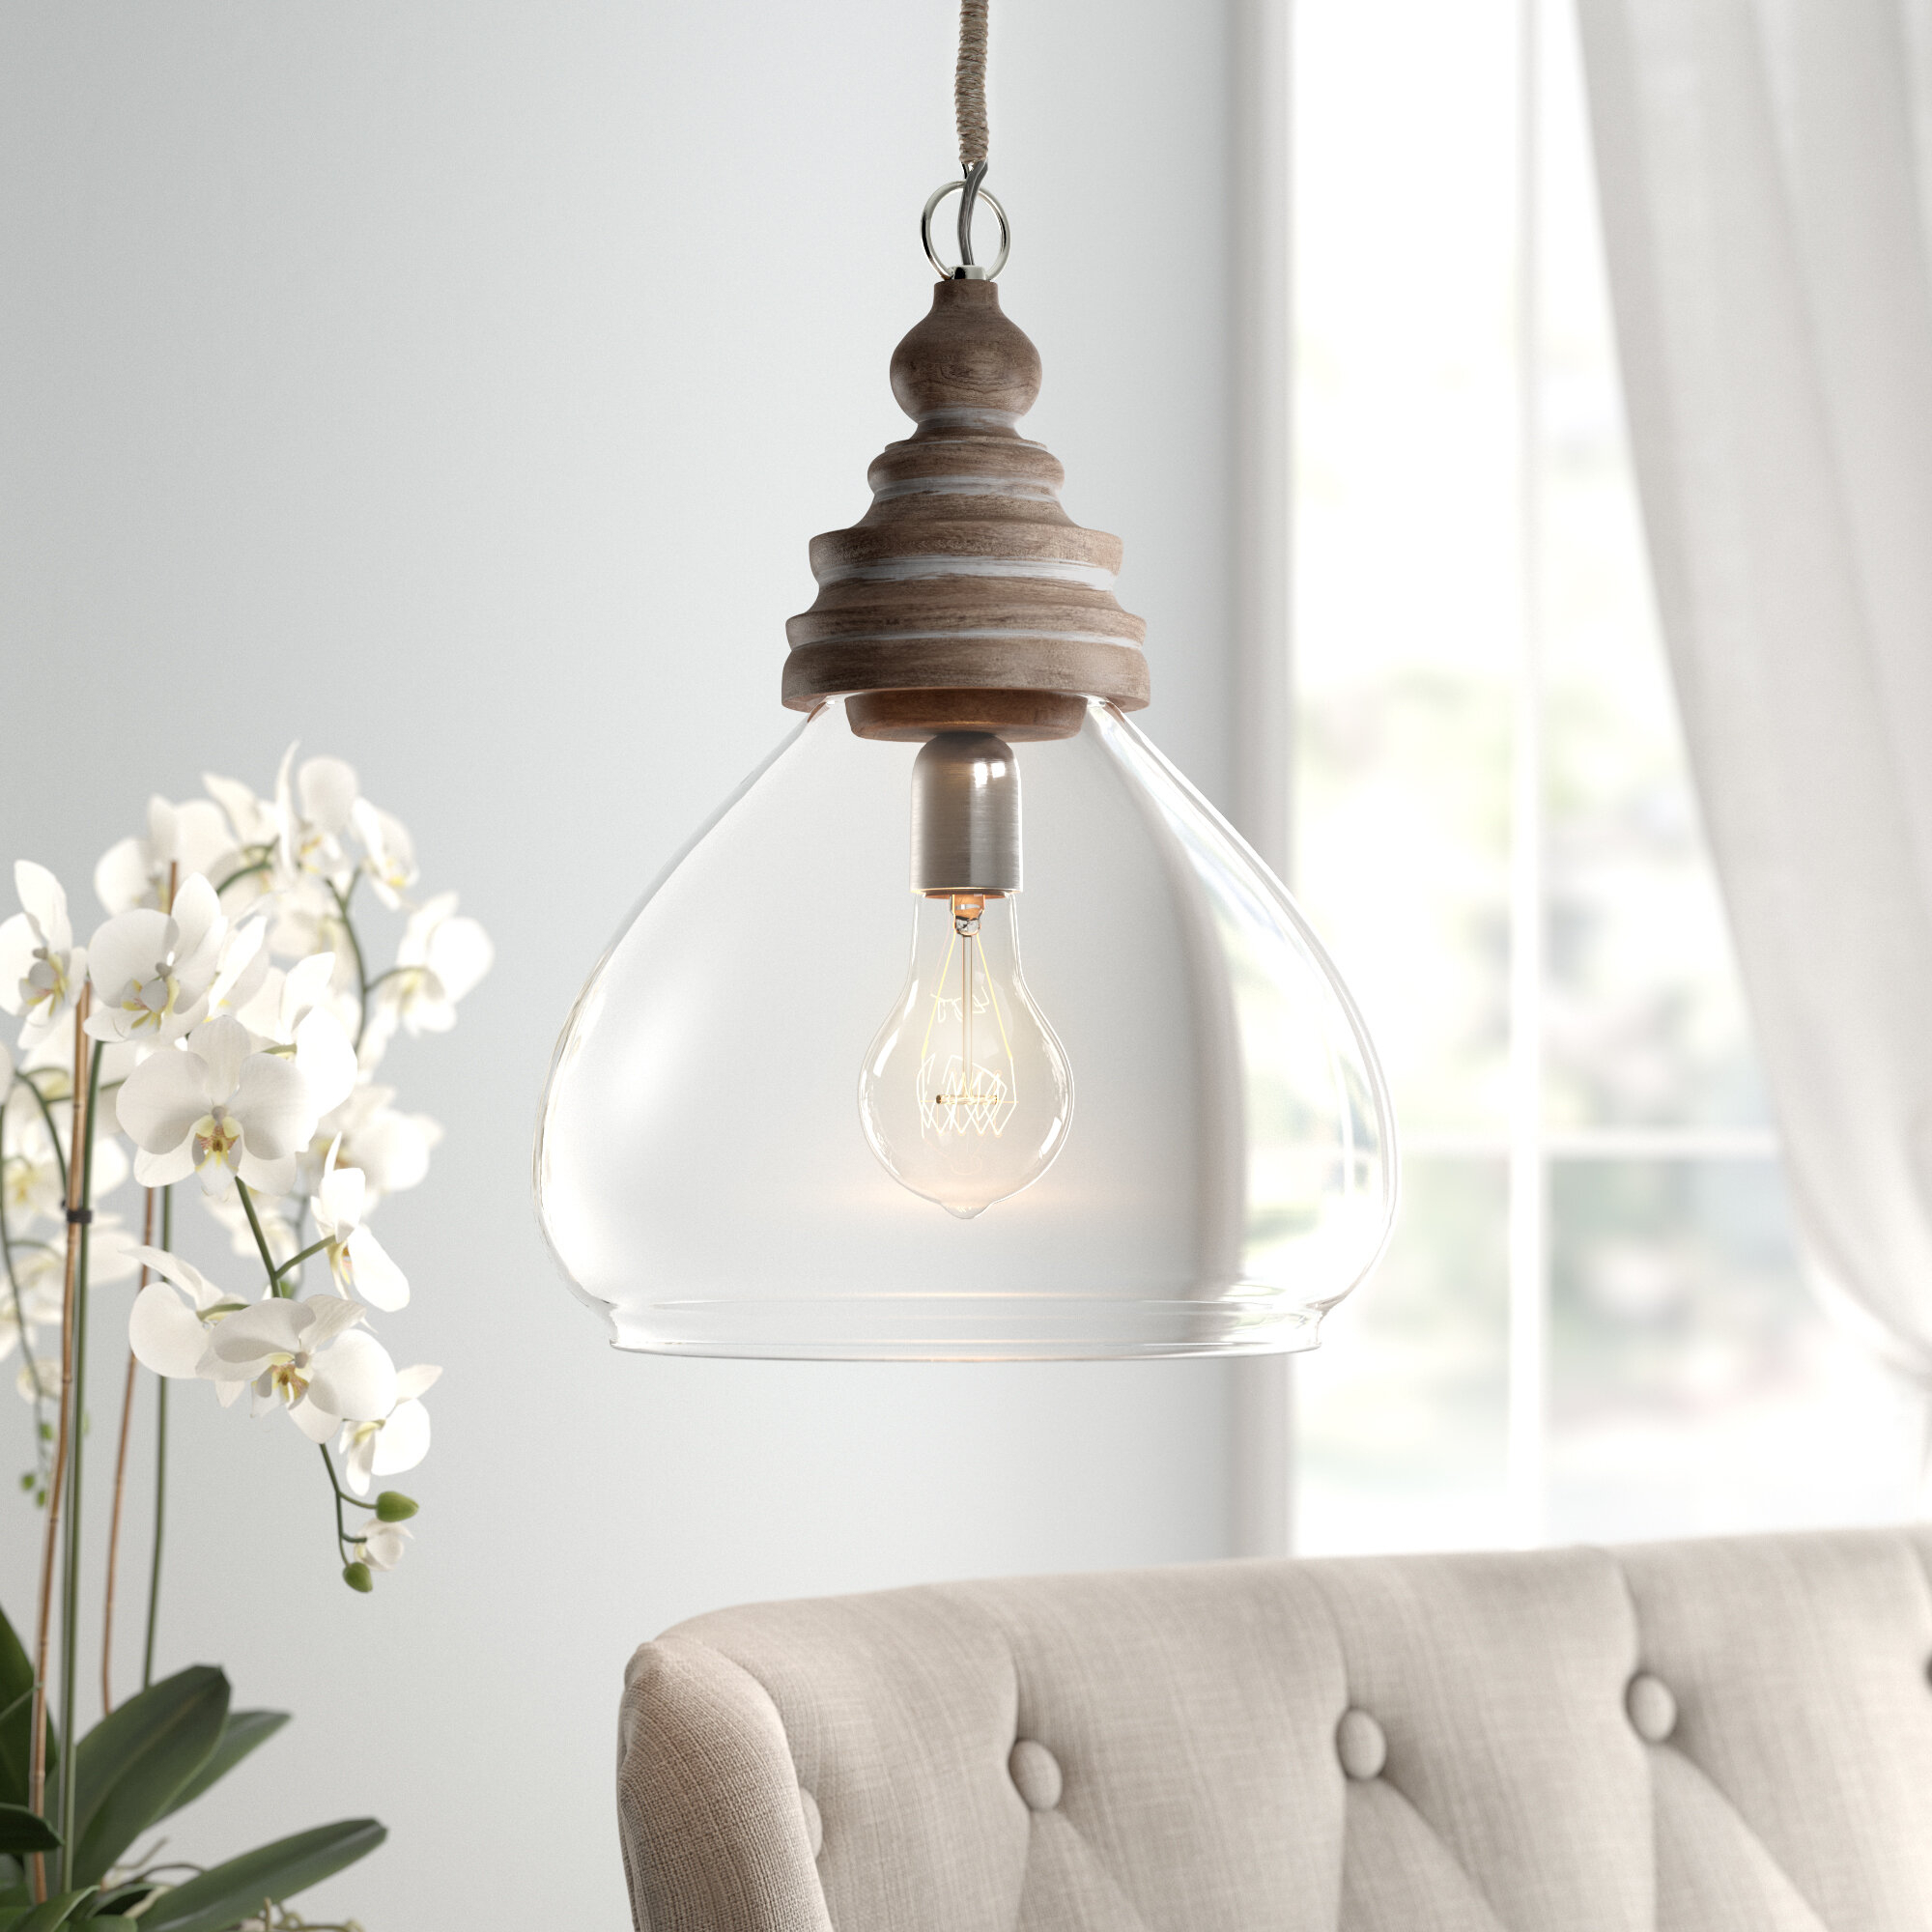 Brisa 1 Light Single Dome Pendant With Regard To Moyer 1 Light Single Cylinder Pendants (View 6 of 30)